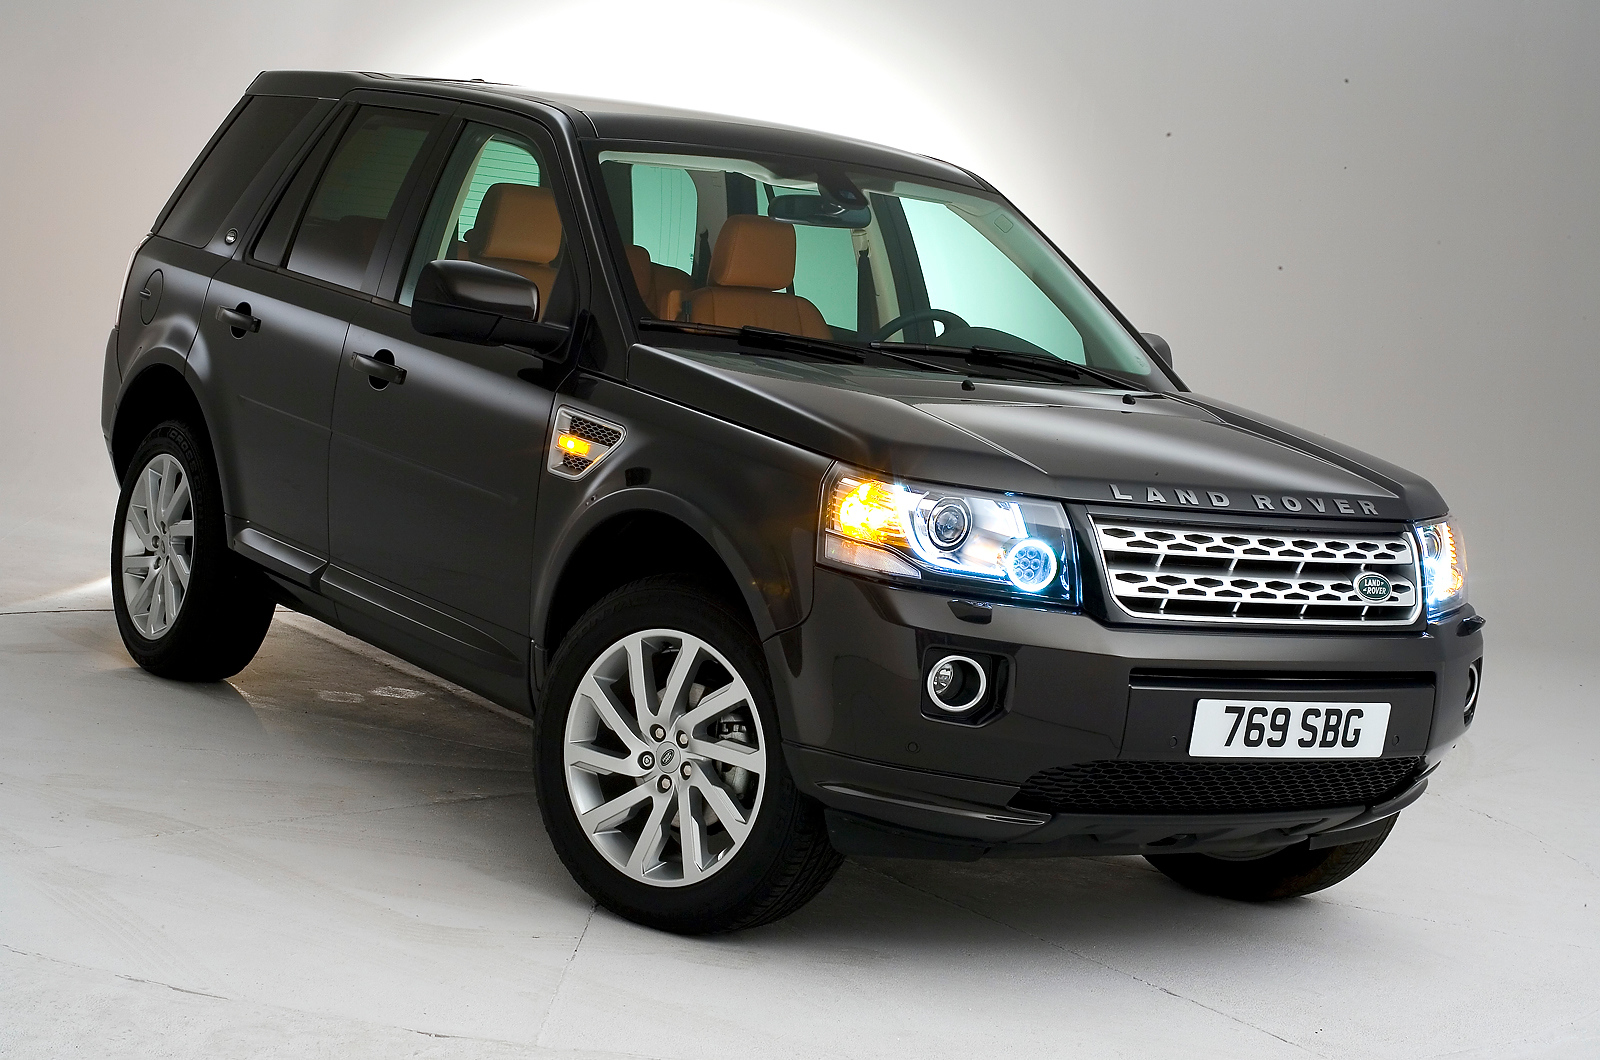 land rover freelander 2 2013. Black Bedroom Furniture Sets. Home Design Ideas